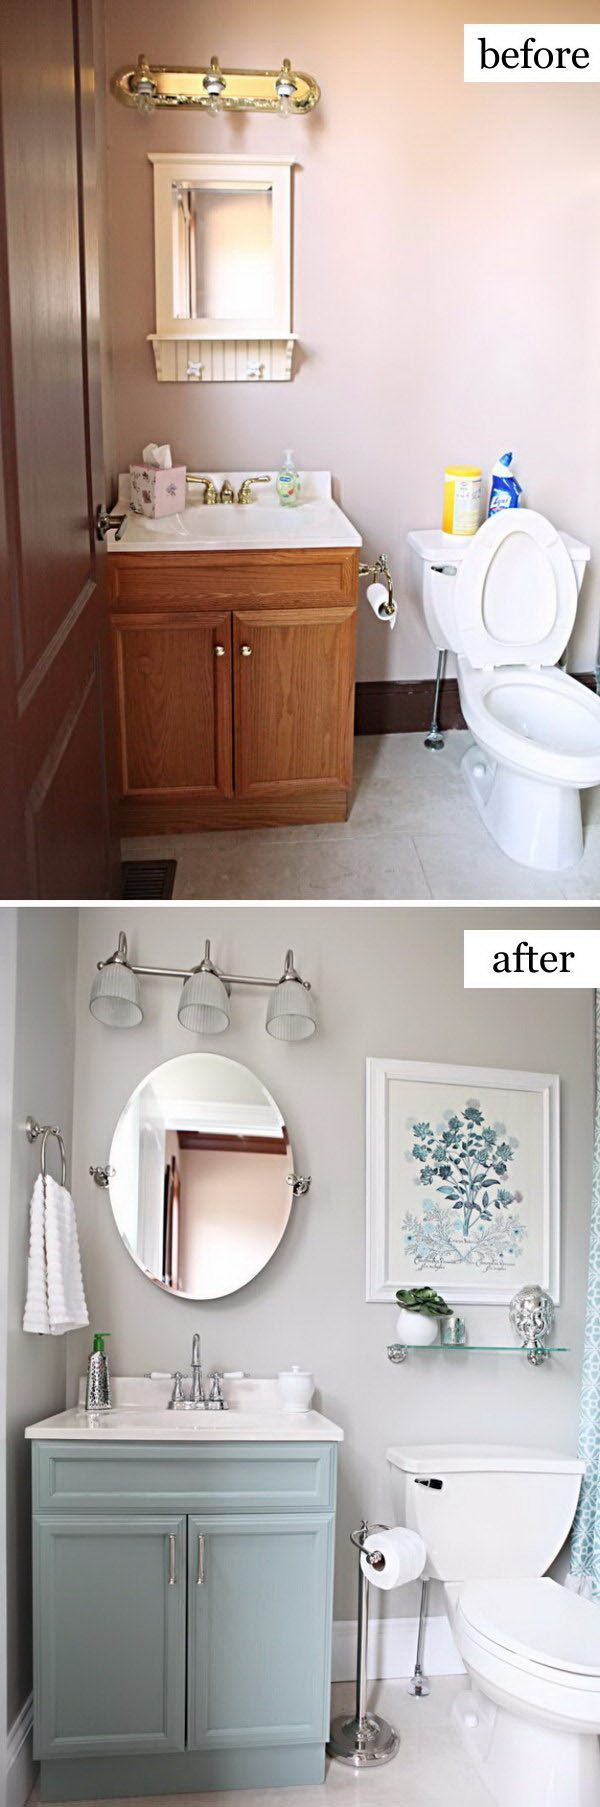 find this pin and more on bathroom remodel ideas - Ideas For Bathroom Remodeling